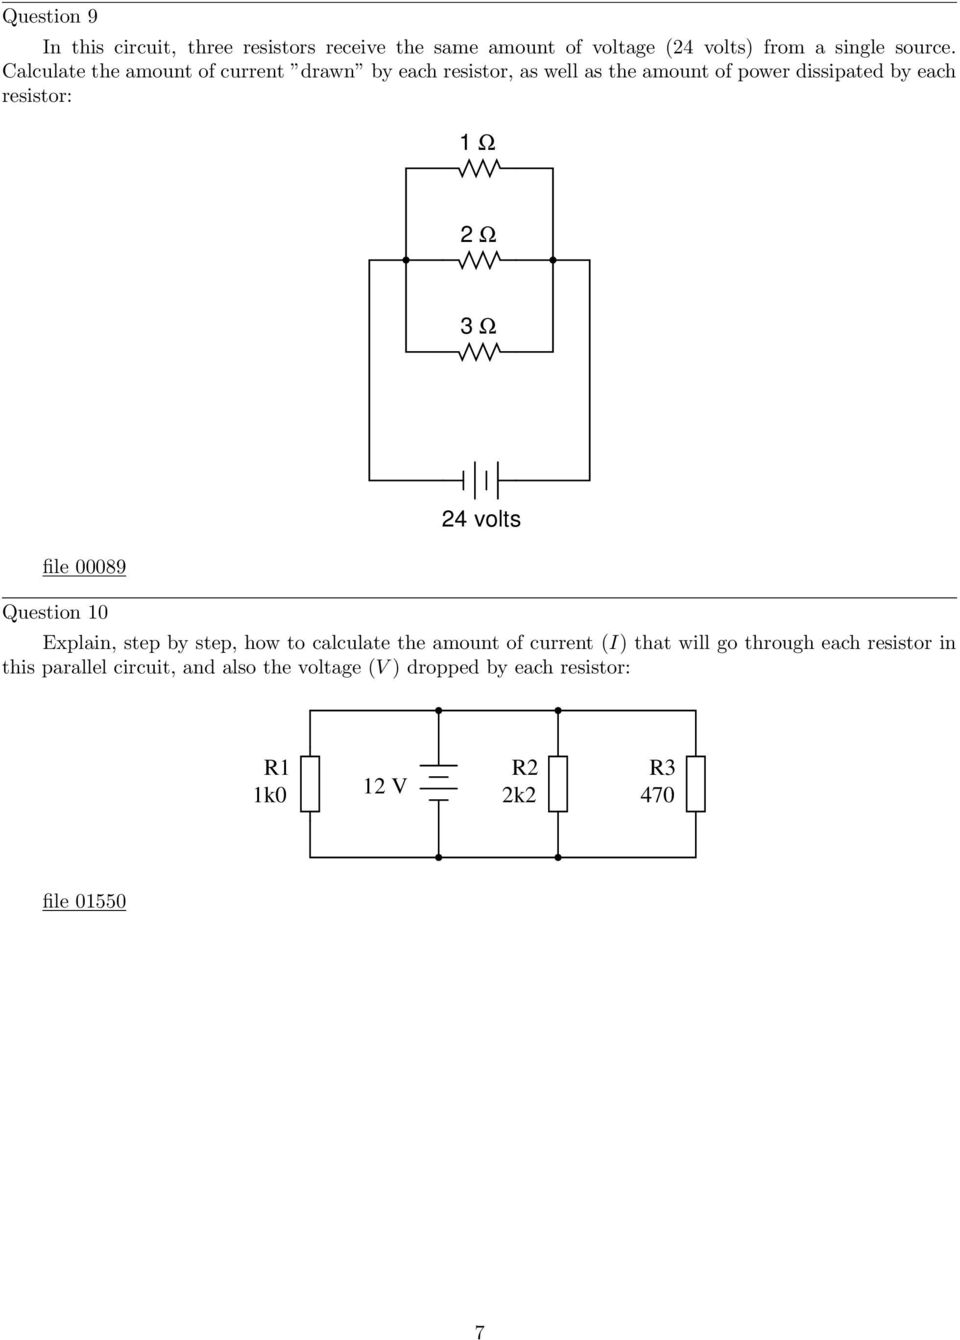 Parallel Dc Circuits Pdf Resistors Simple Voltage Divider Question Electrical Engineering 3 File 00089 10 24 Volts Explain Step By How